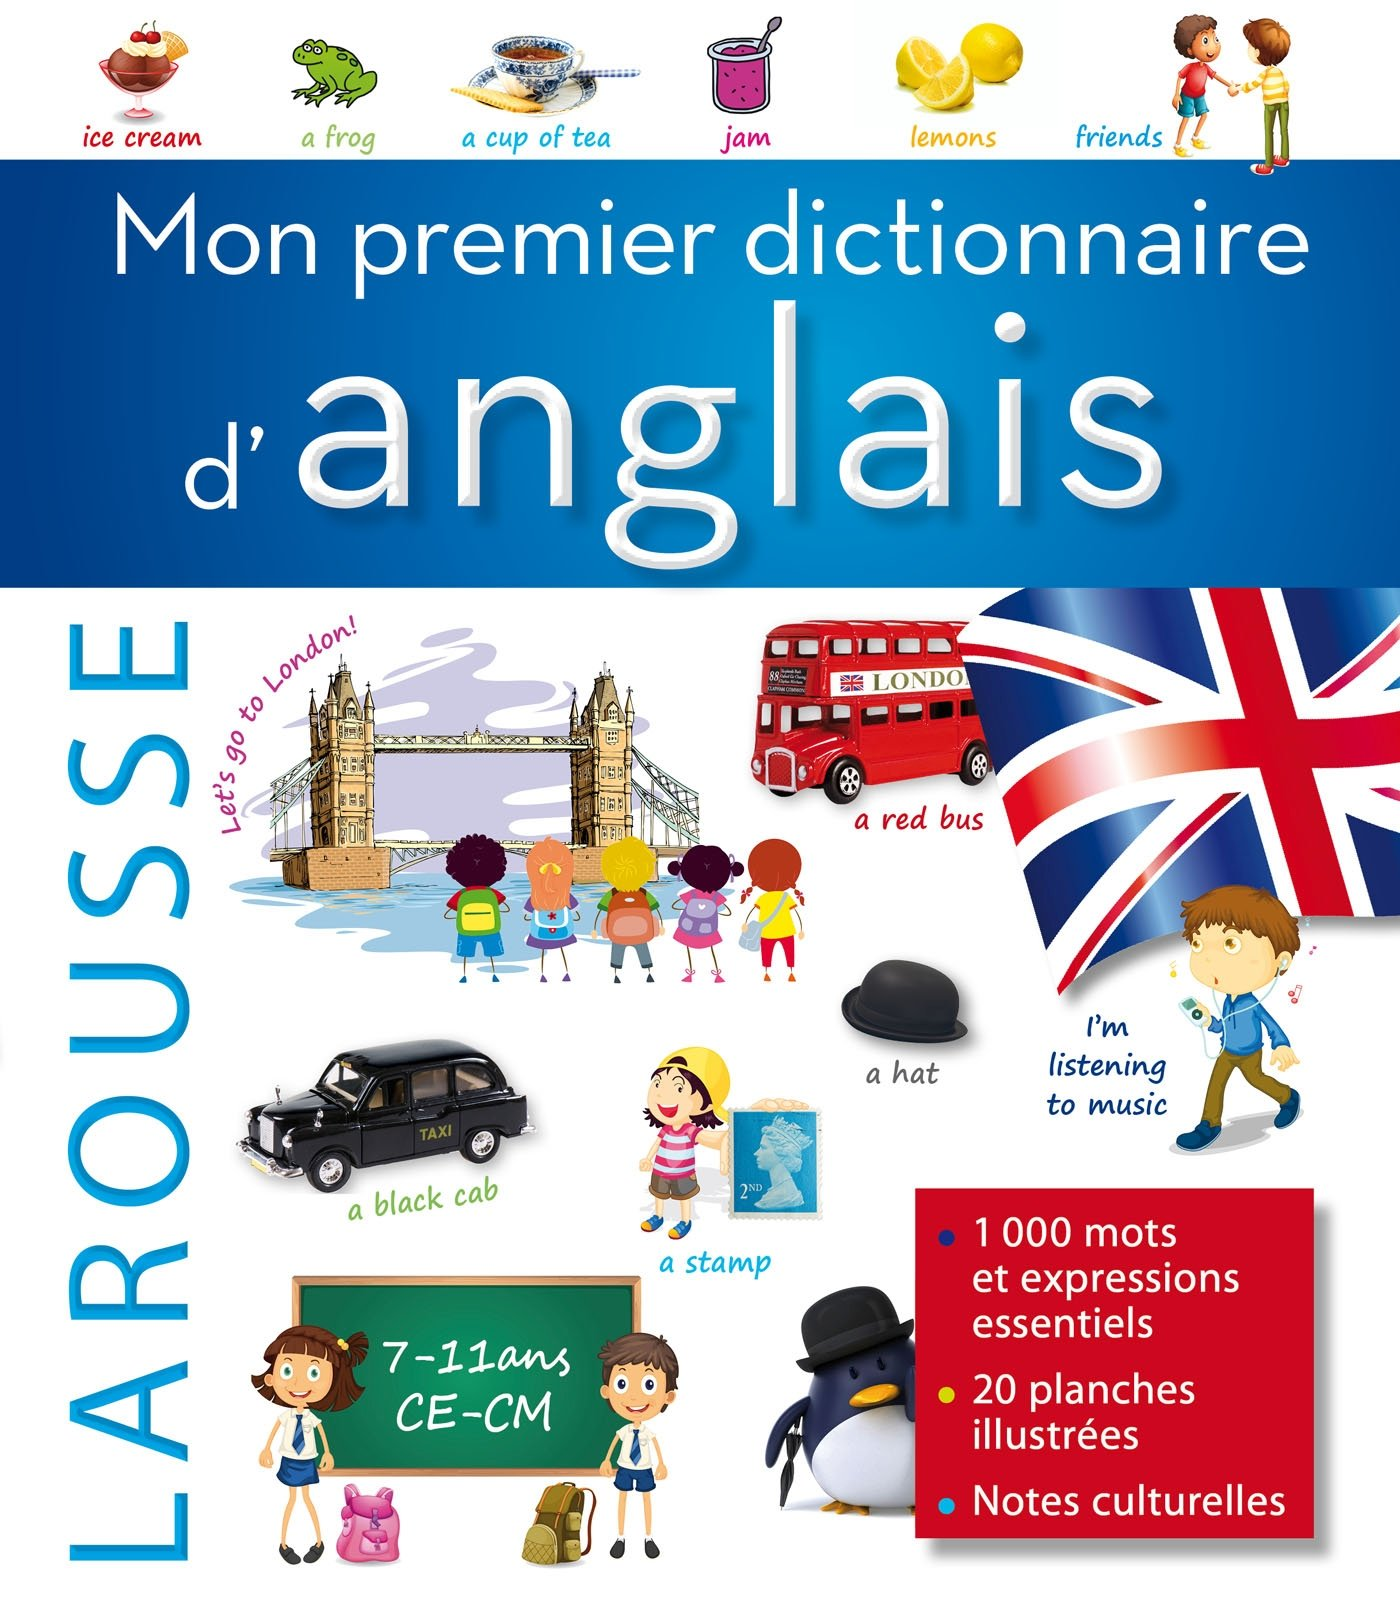 Mon Premier Dictionnaire D Anglais Larousse My First English Dictionary Bilingue Anglais Collectif Larousse 9782035889300 Amazon Com Books